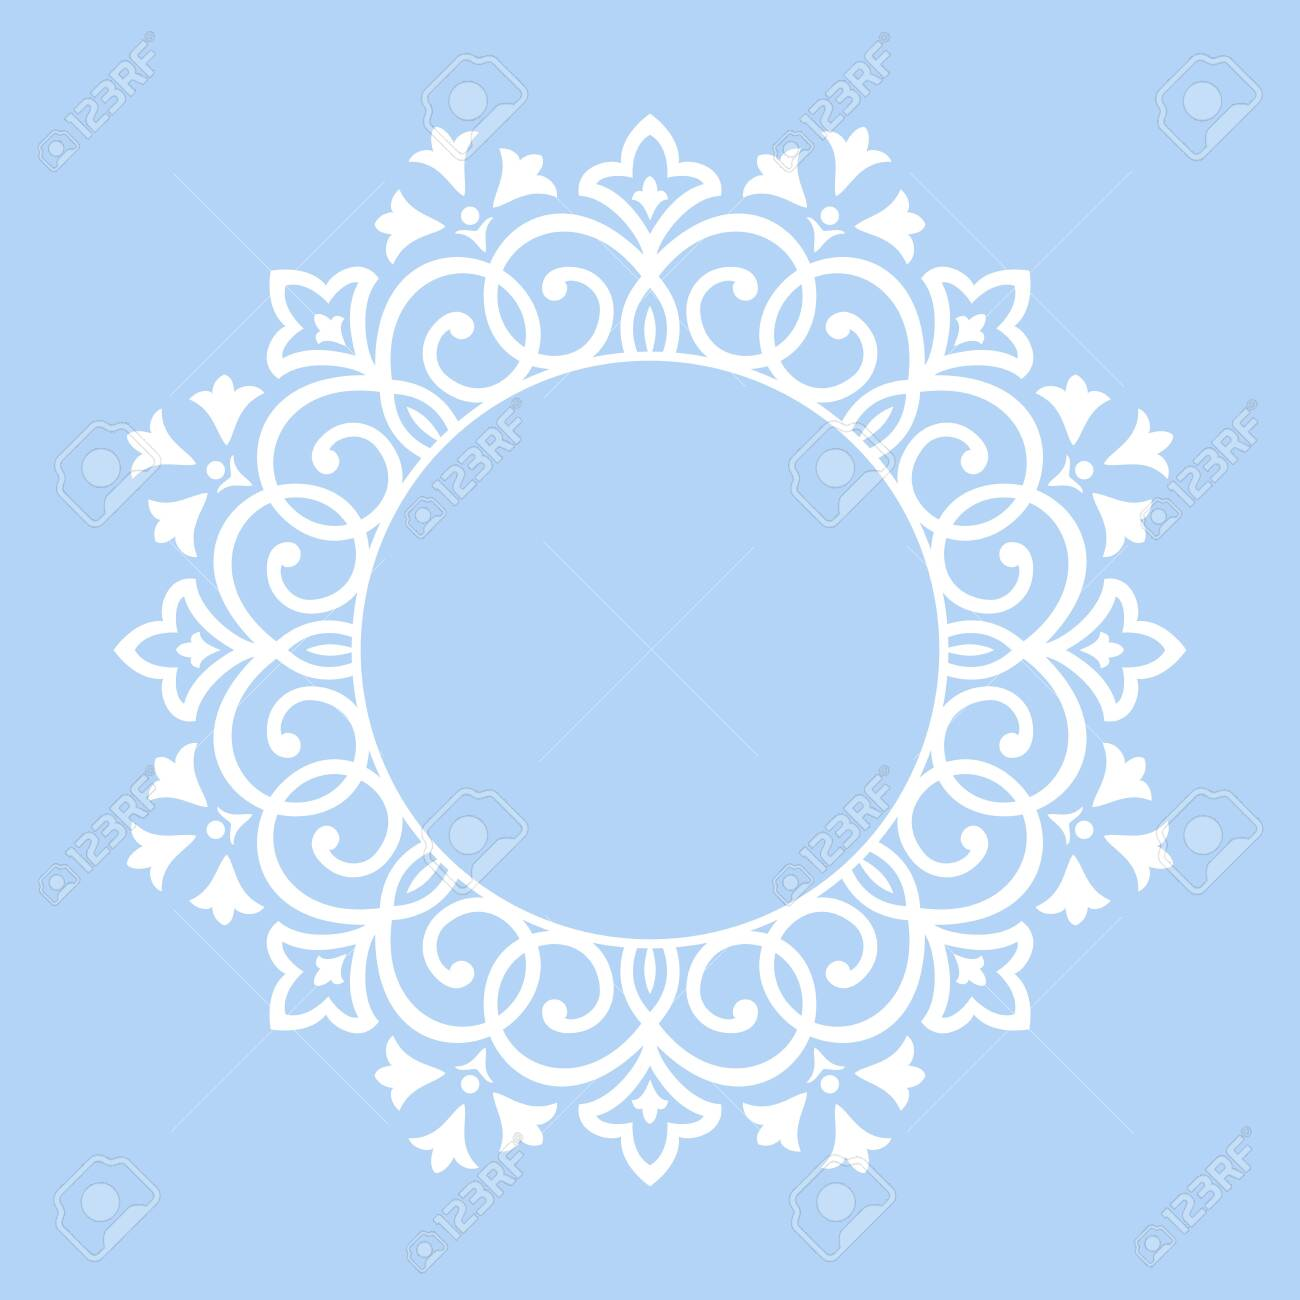 Decorative frame Elegant vector element for design in Eastern style, place for text. Floral blue border. Lace illustration for invitations and greeting cards - 124239709